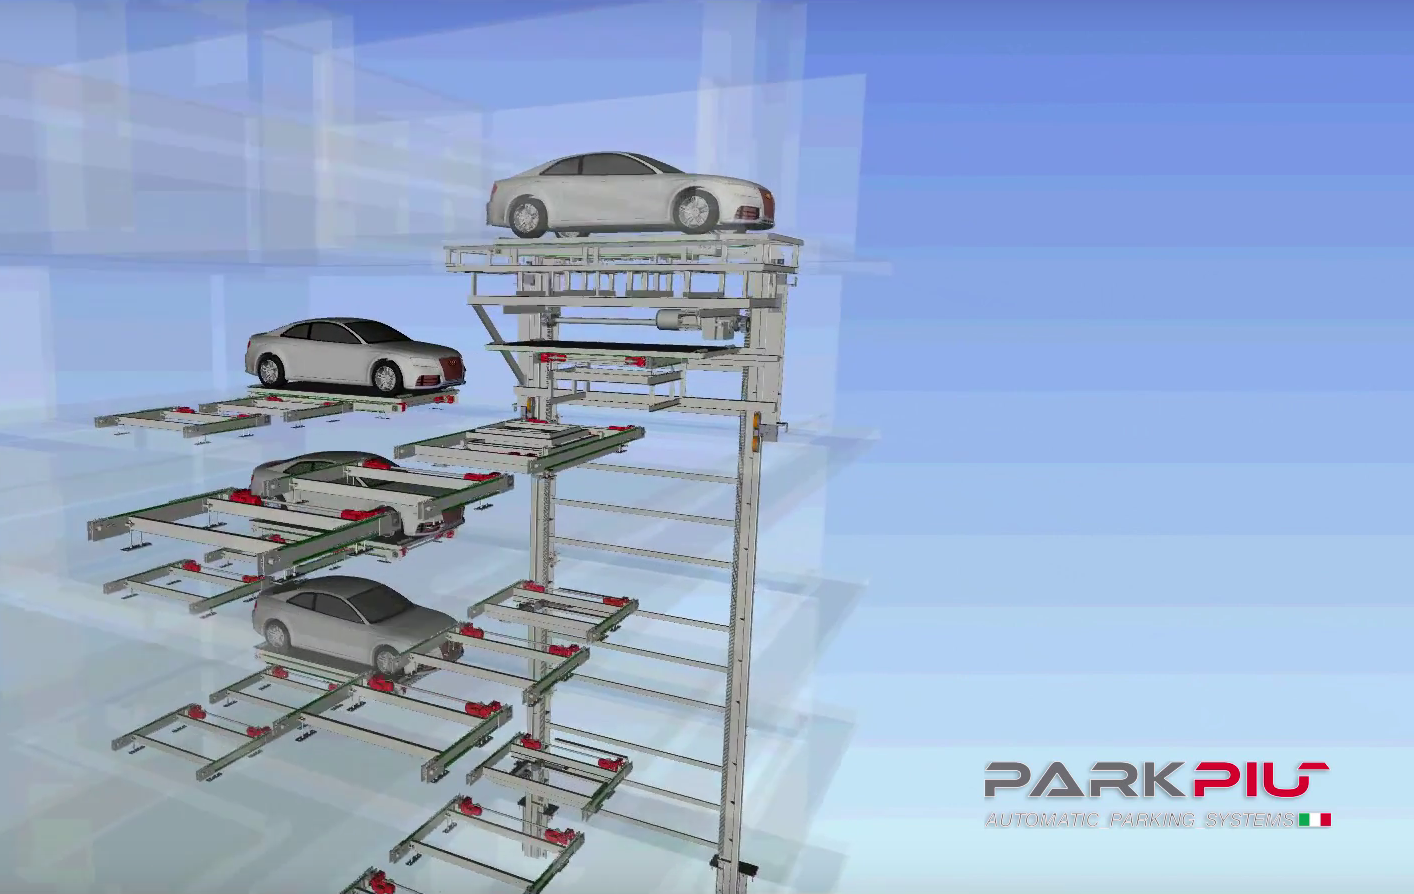 New installation automatic parking in Milan